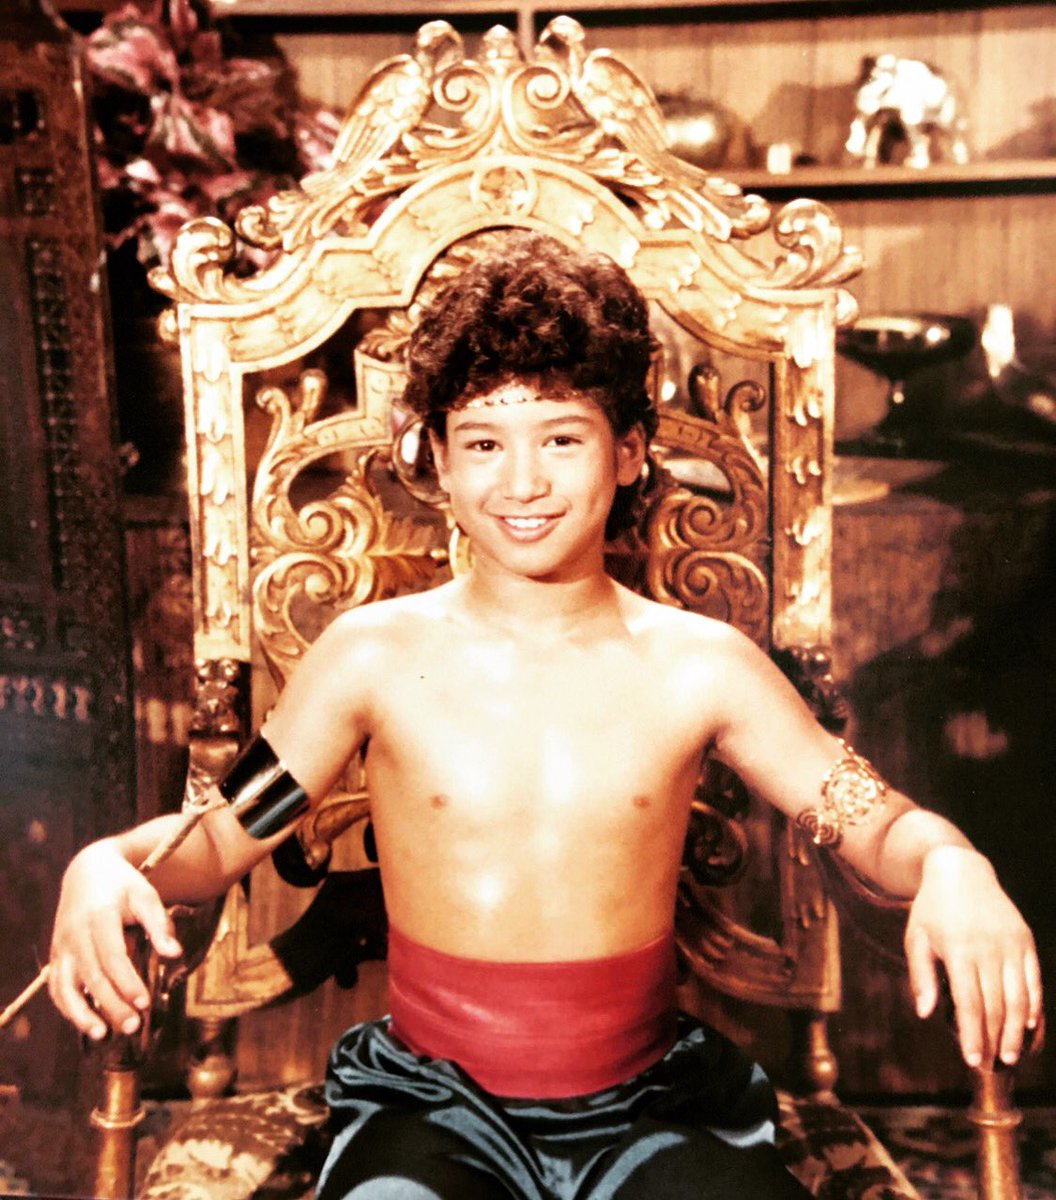 #TBT  When I heard they're doing a LIVE action Aladdin movie <br>http://pic.twitter.com/VNgXHwiTbV